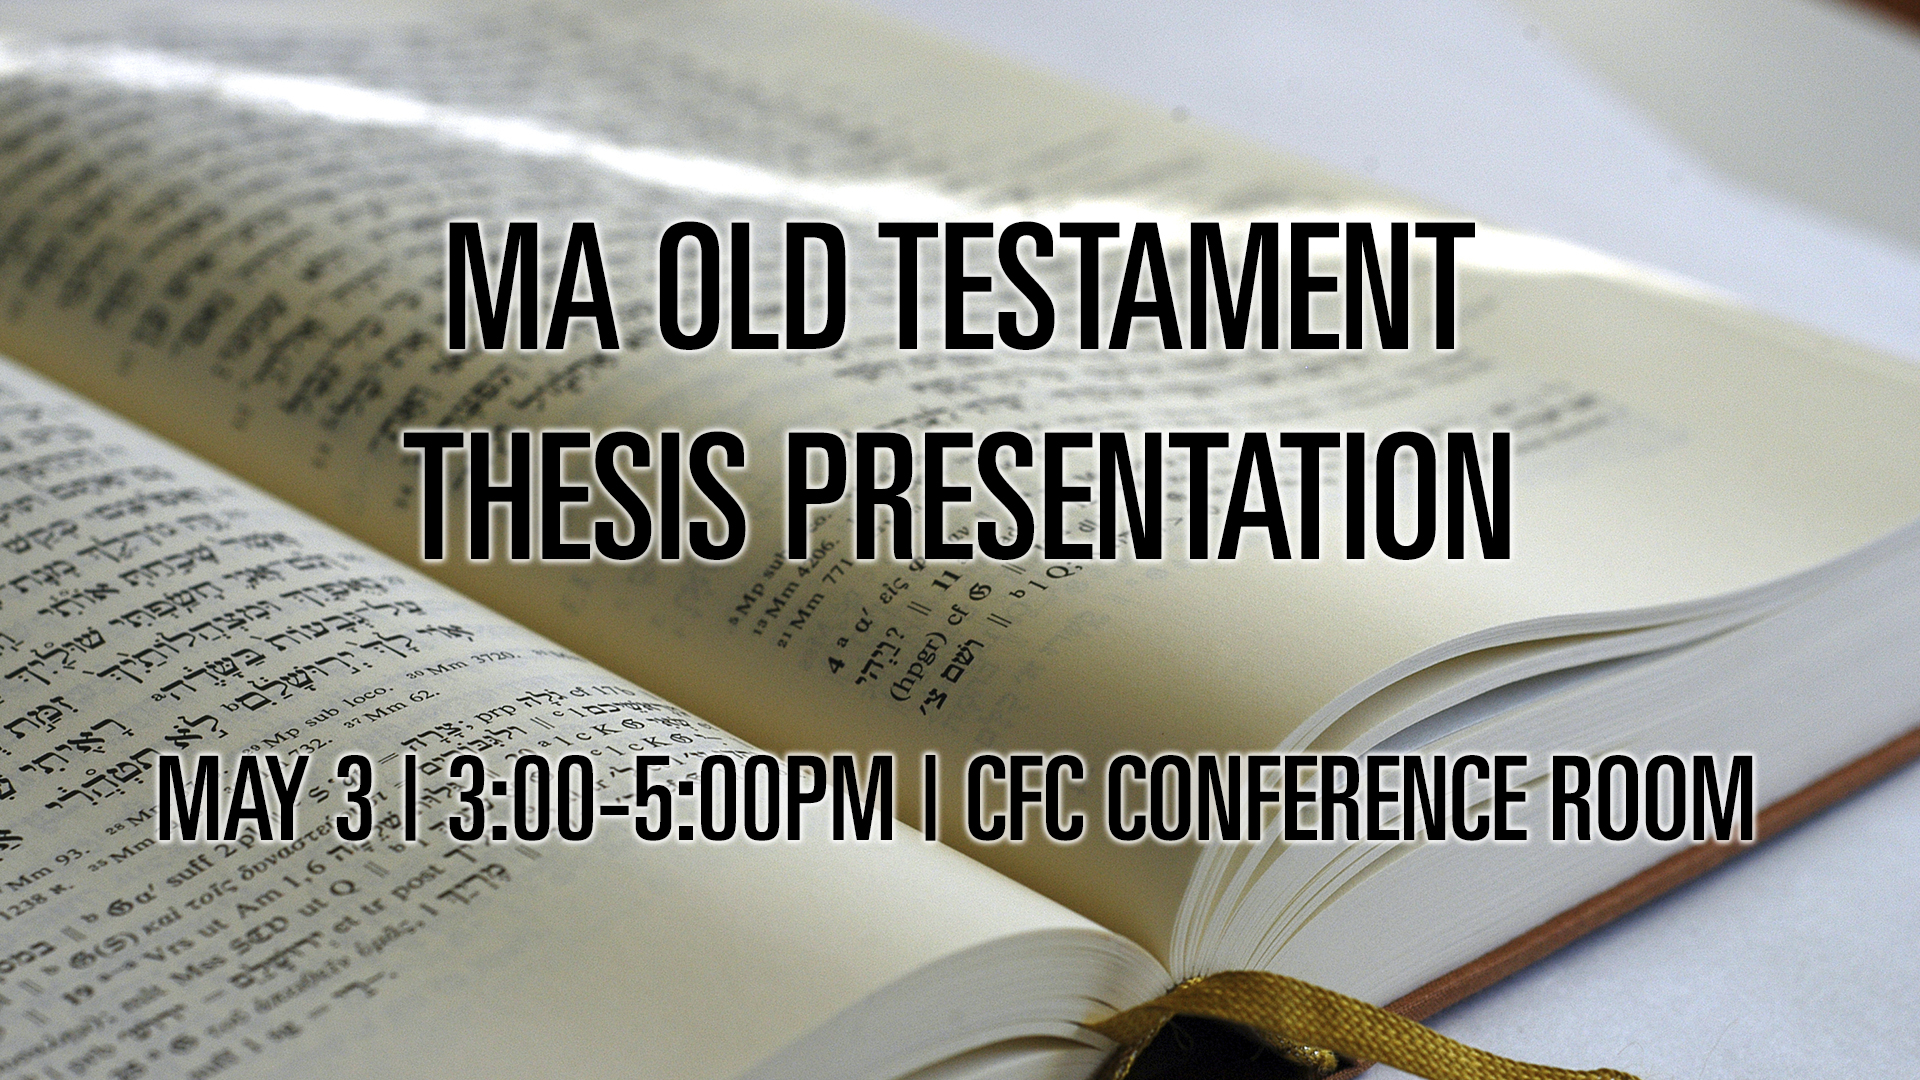 old testament dissertations Recent dissertations recent dissertation topics include: a study of hospitality in the old testament, using the tool of linguistic pragmatics.